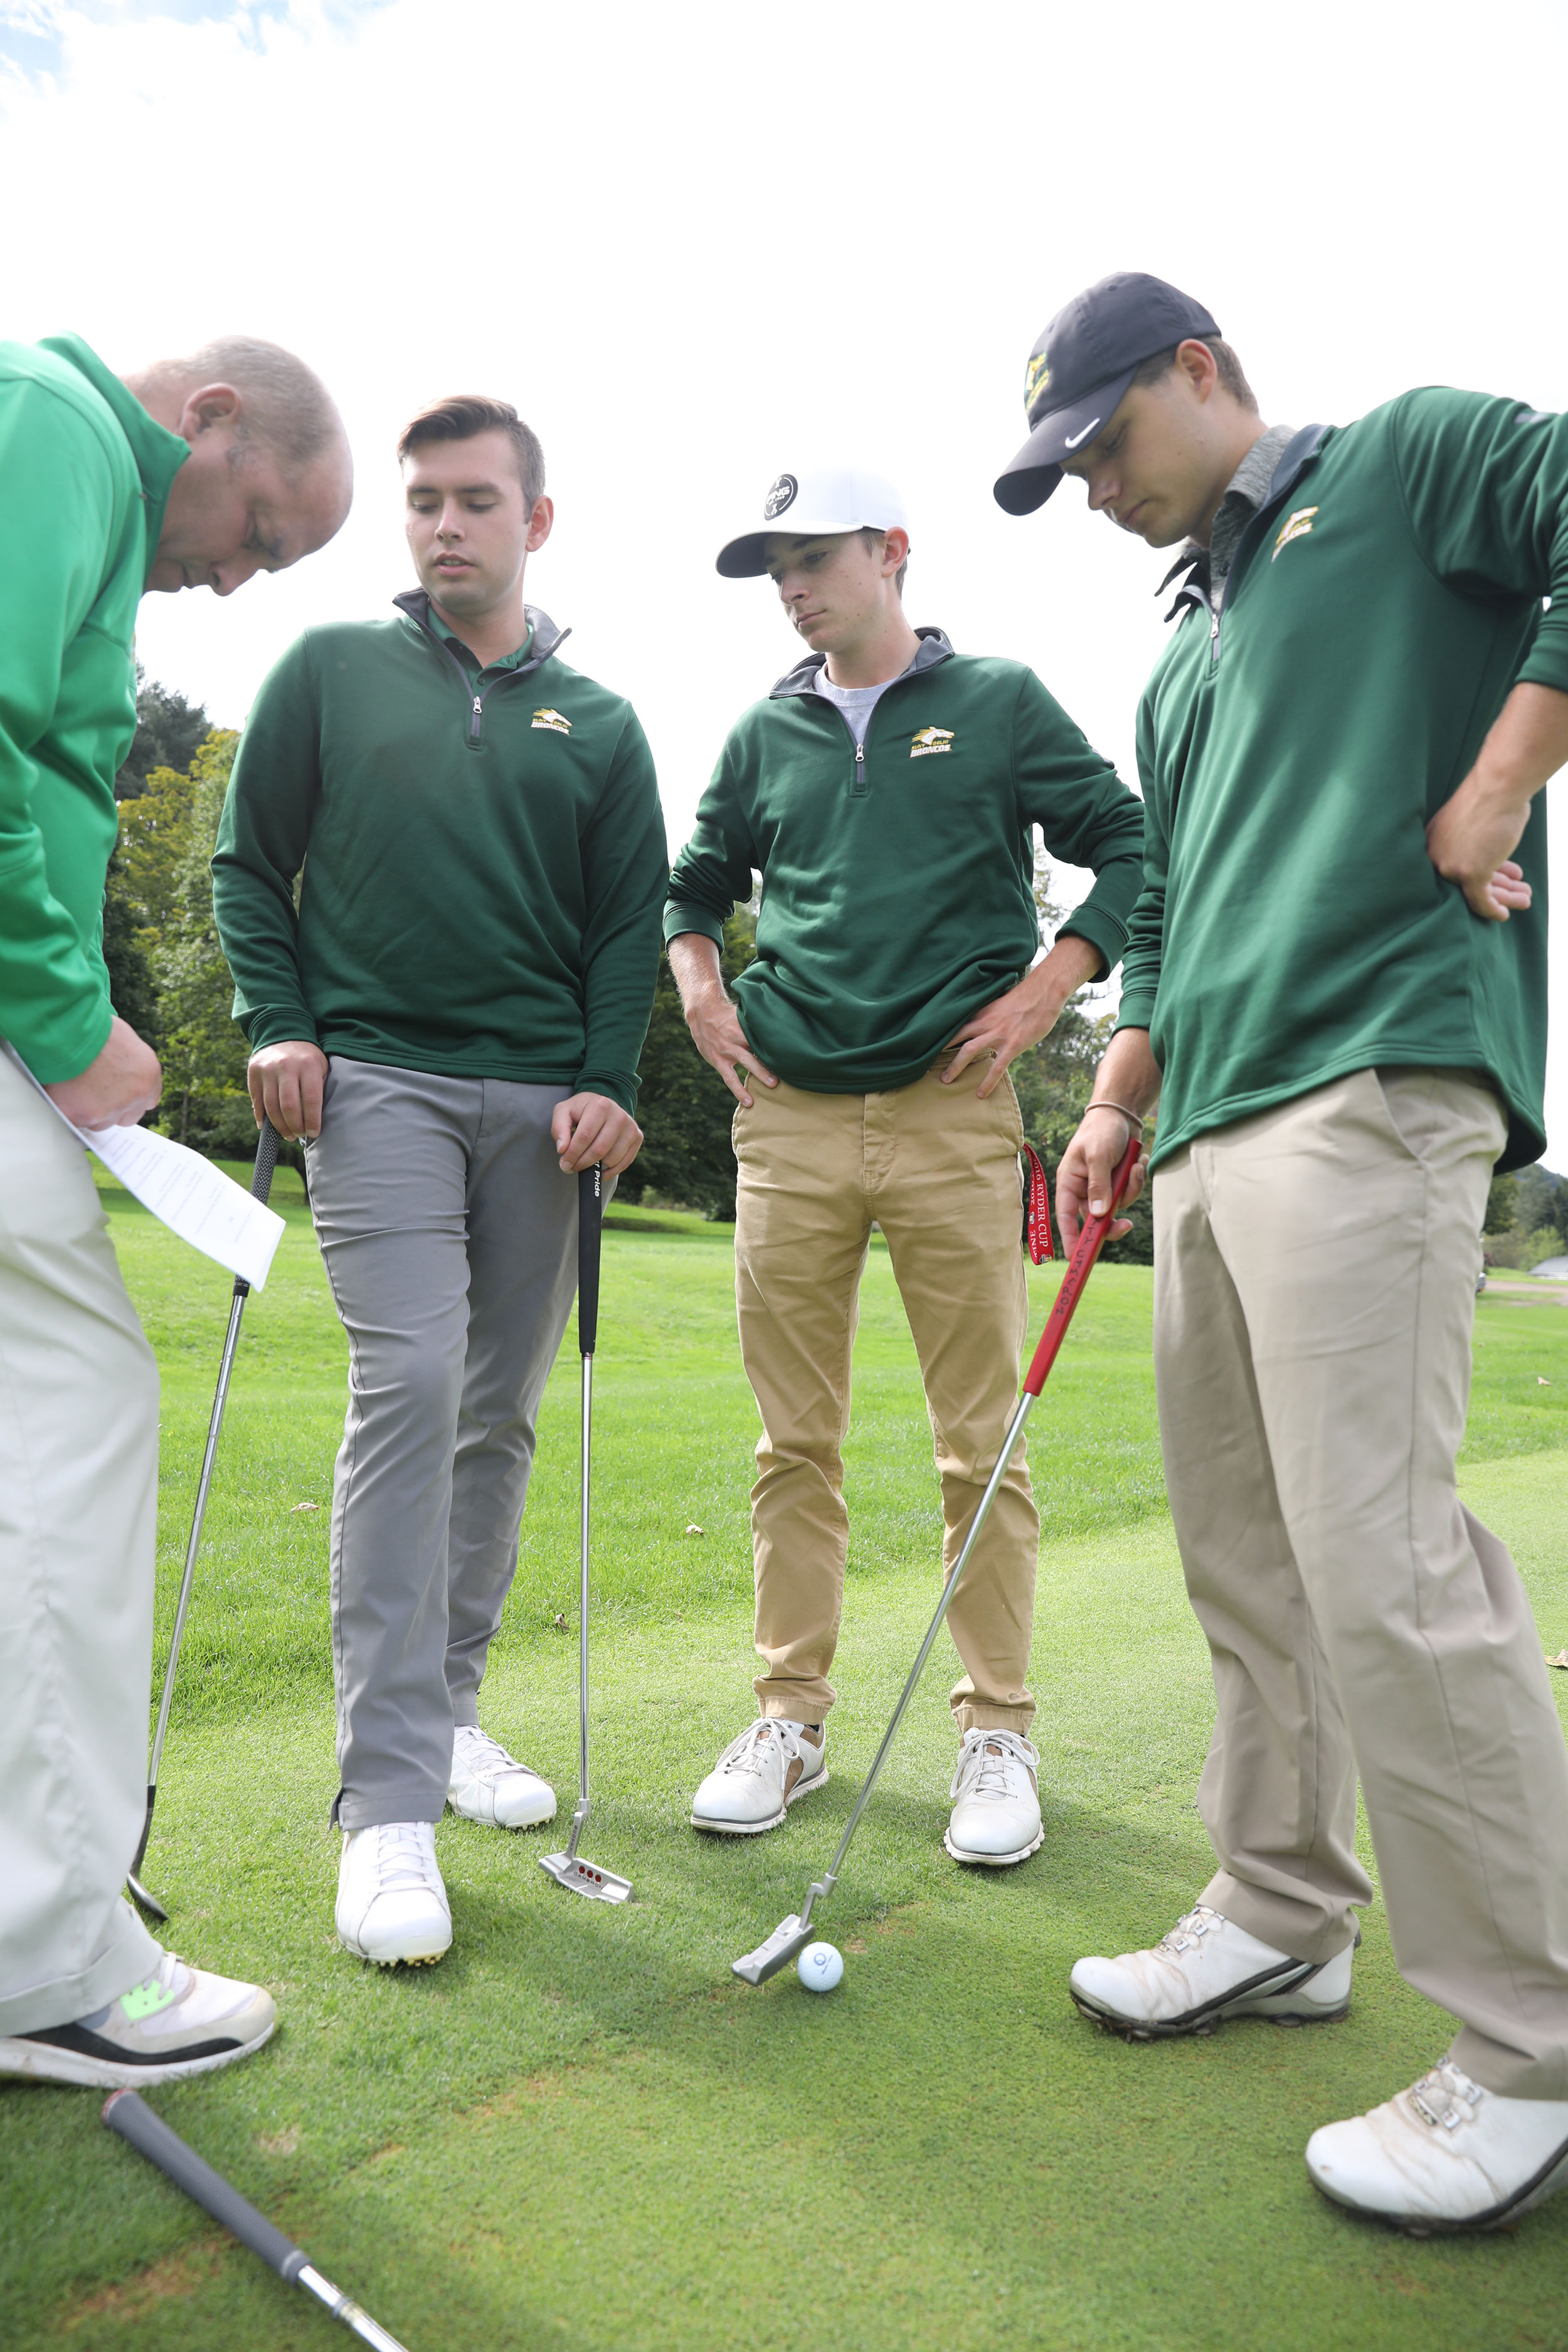 Four golfers looking down at a gof ball